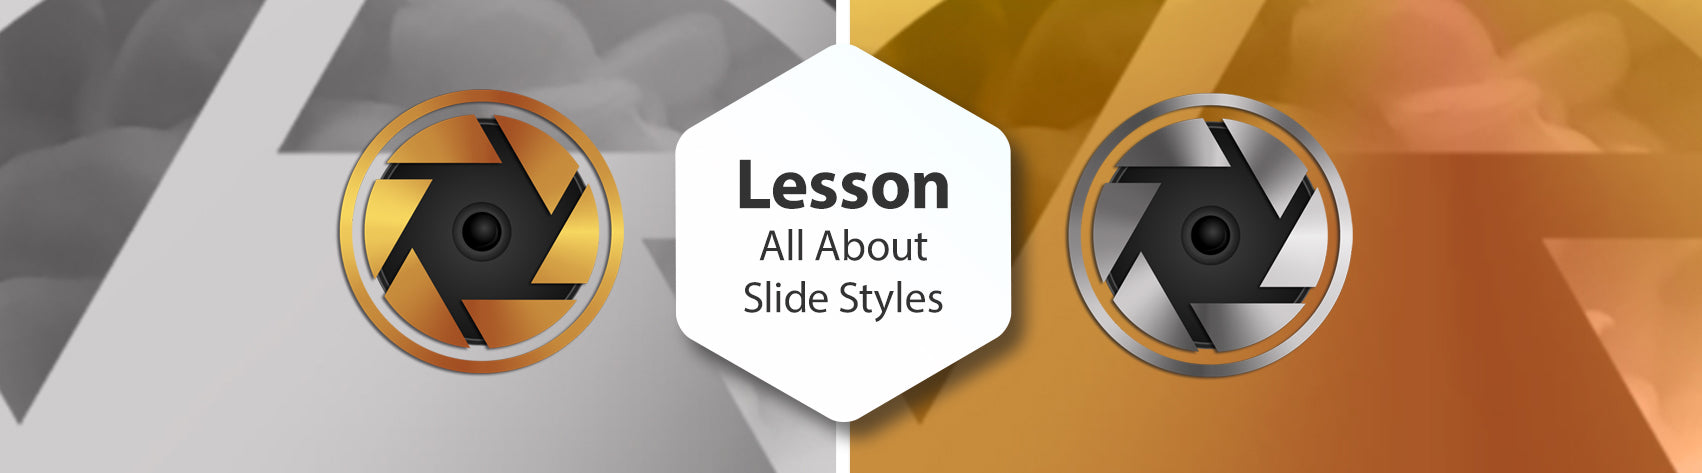 Lesson - All About Slide Styles